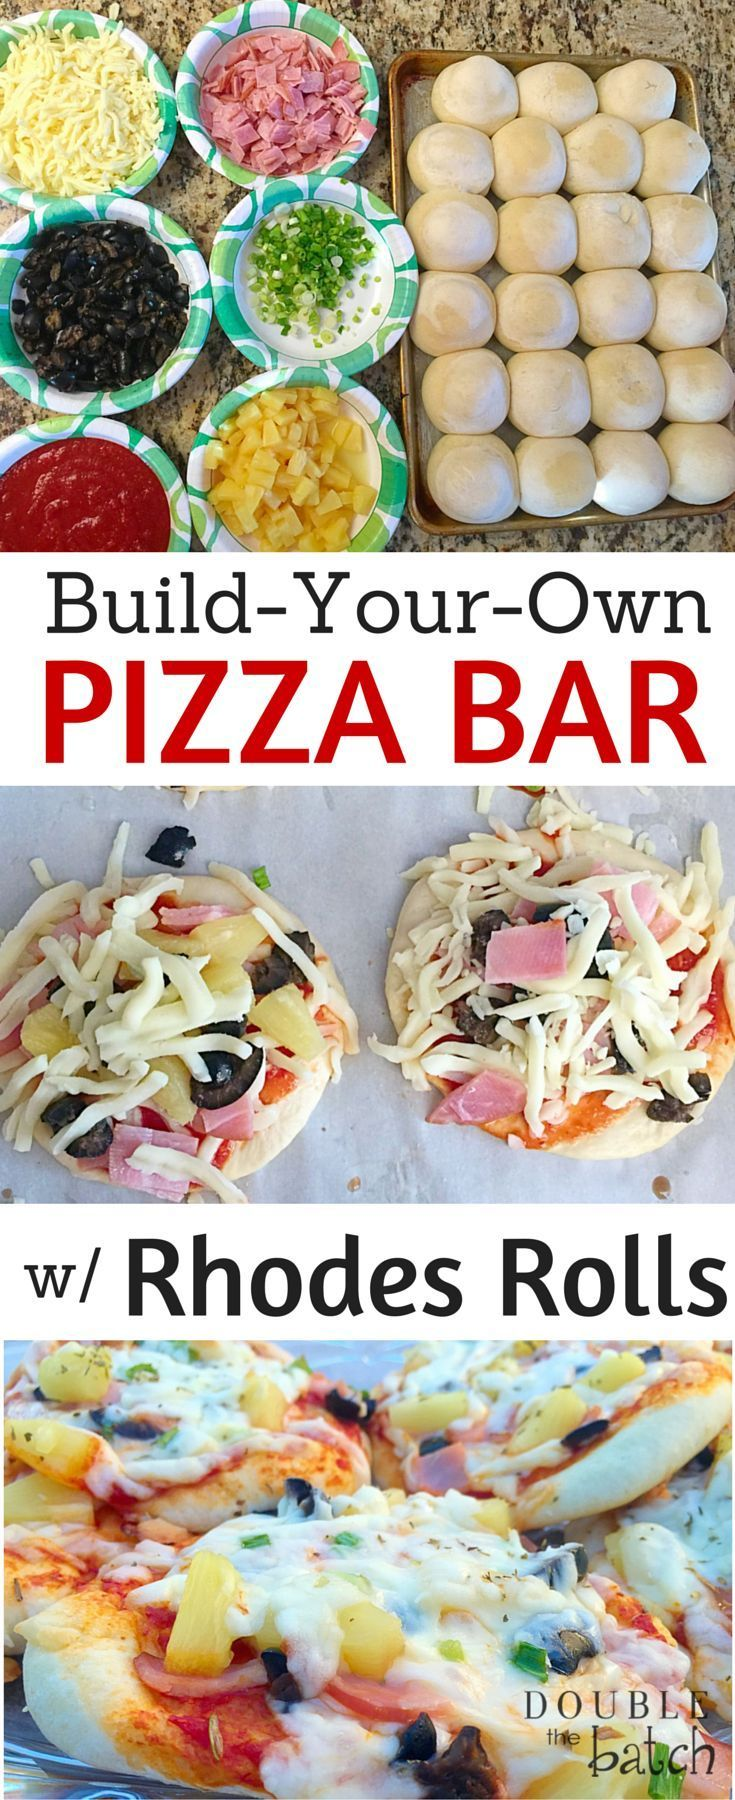 Hands down my kids favorite Friday night meal! These Rhodes Rolls mini pizzas are a hit with kids....and the neighbors! #DoubletheBatch